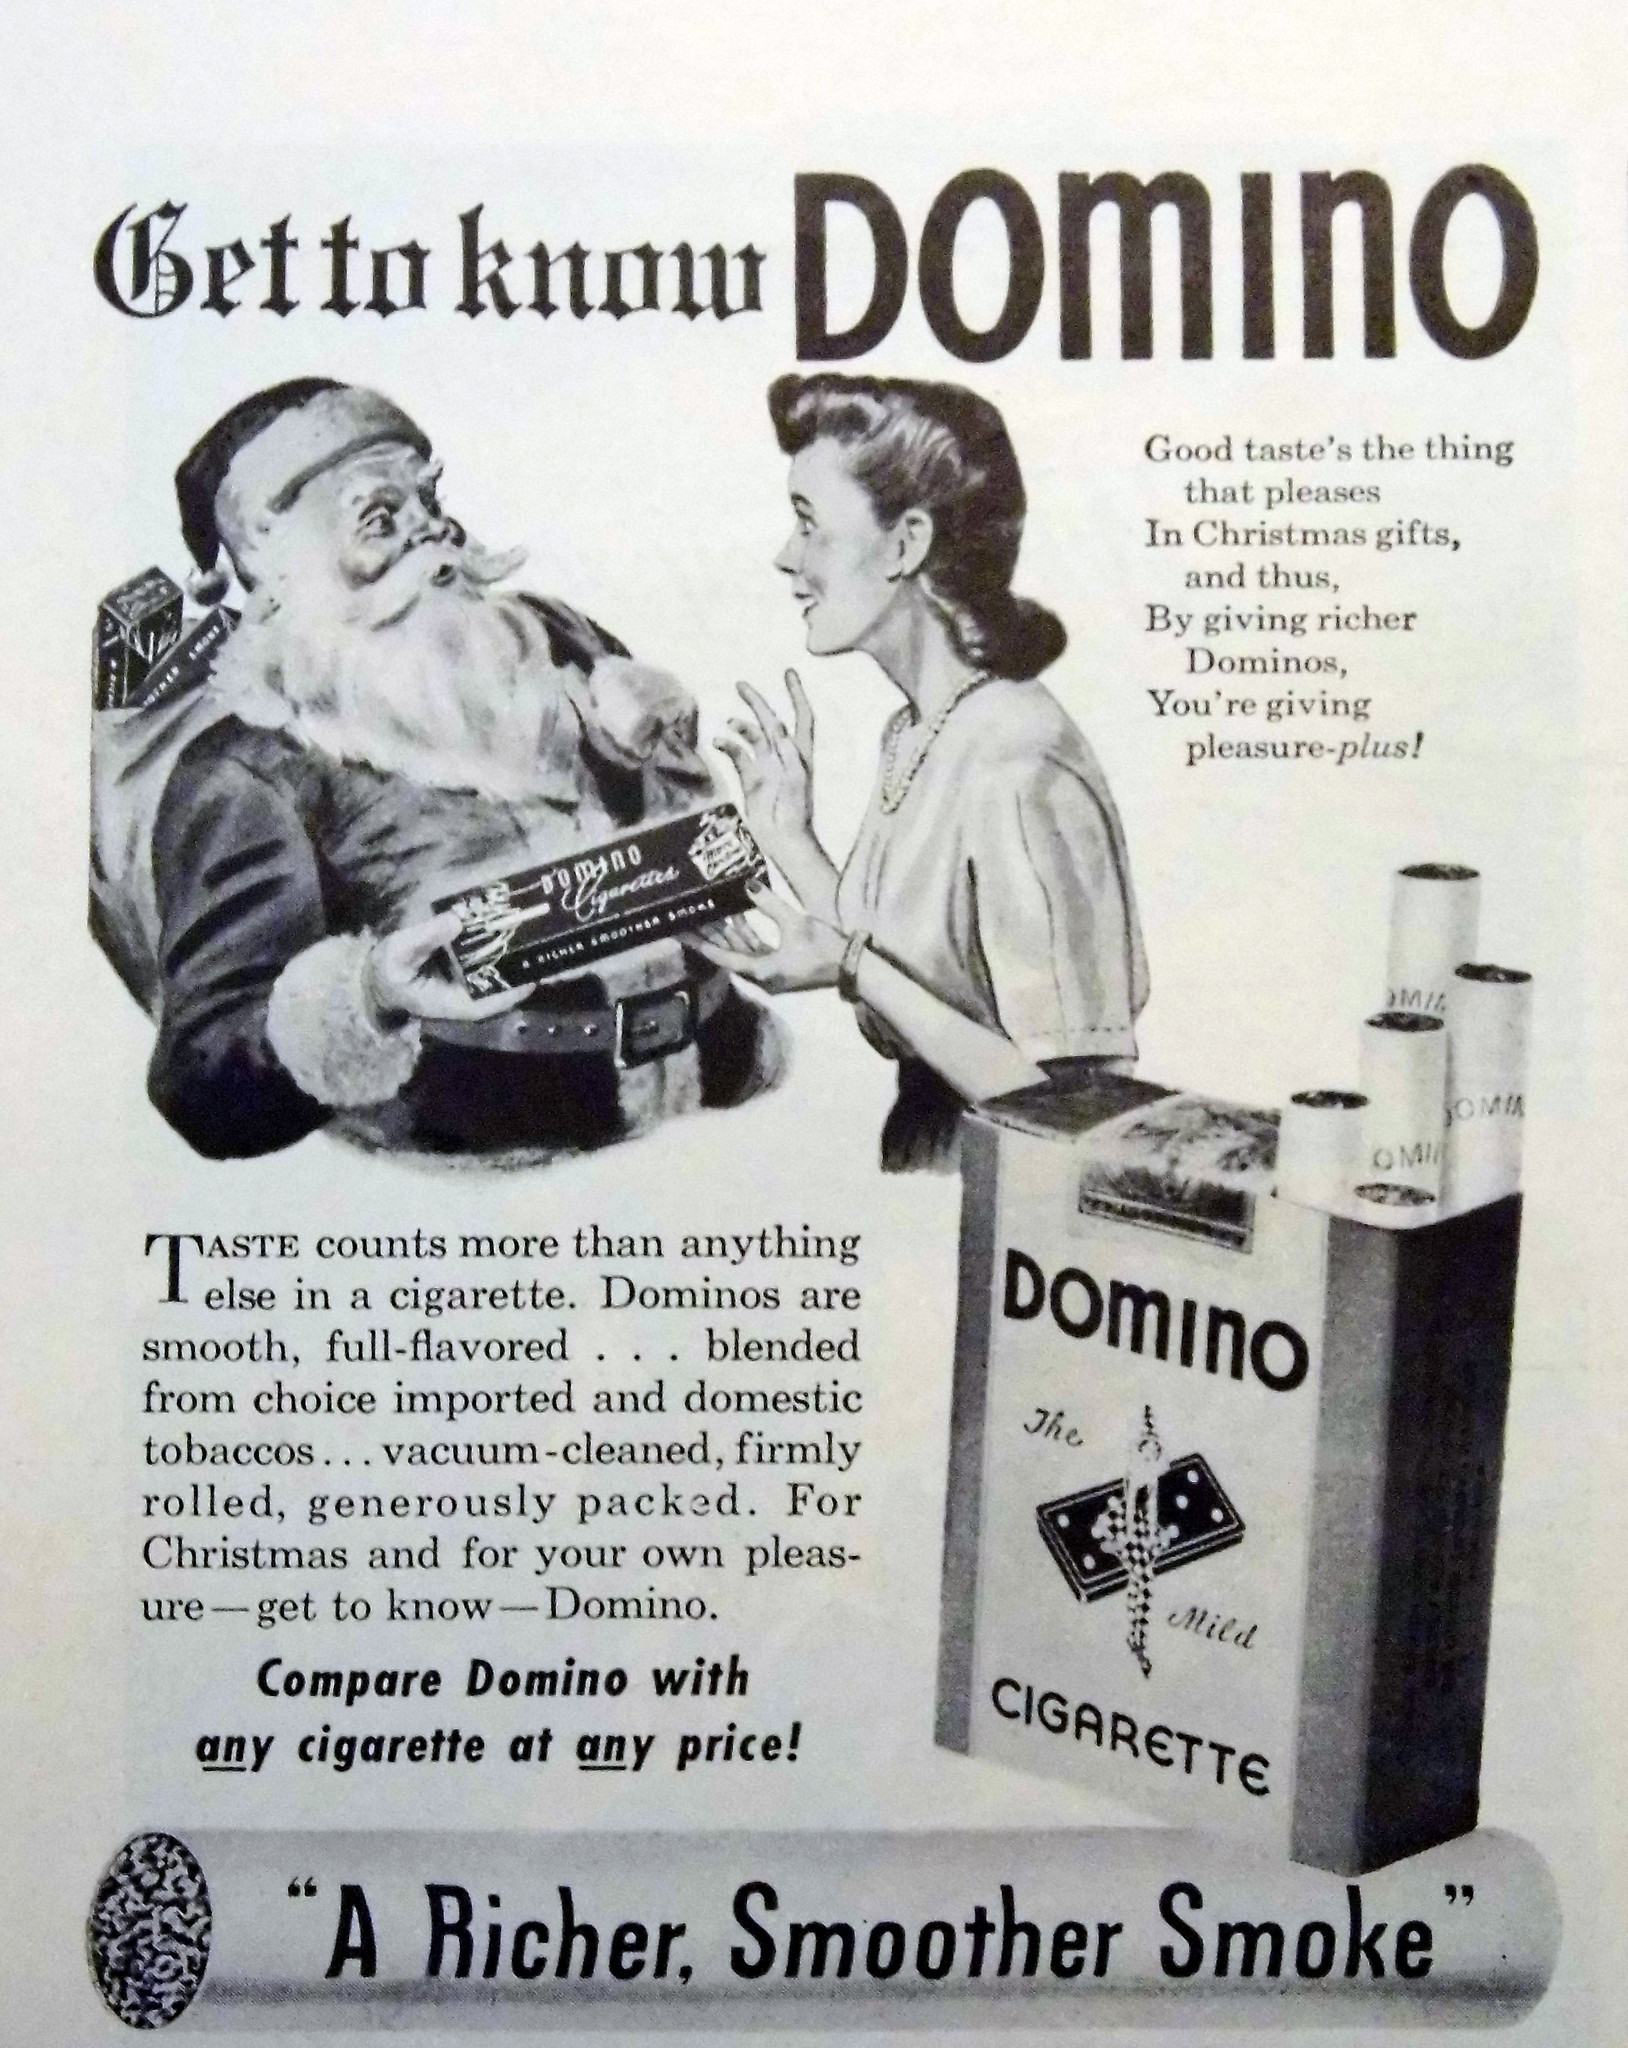 Domino - published in Life - December 14, 1942